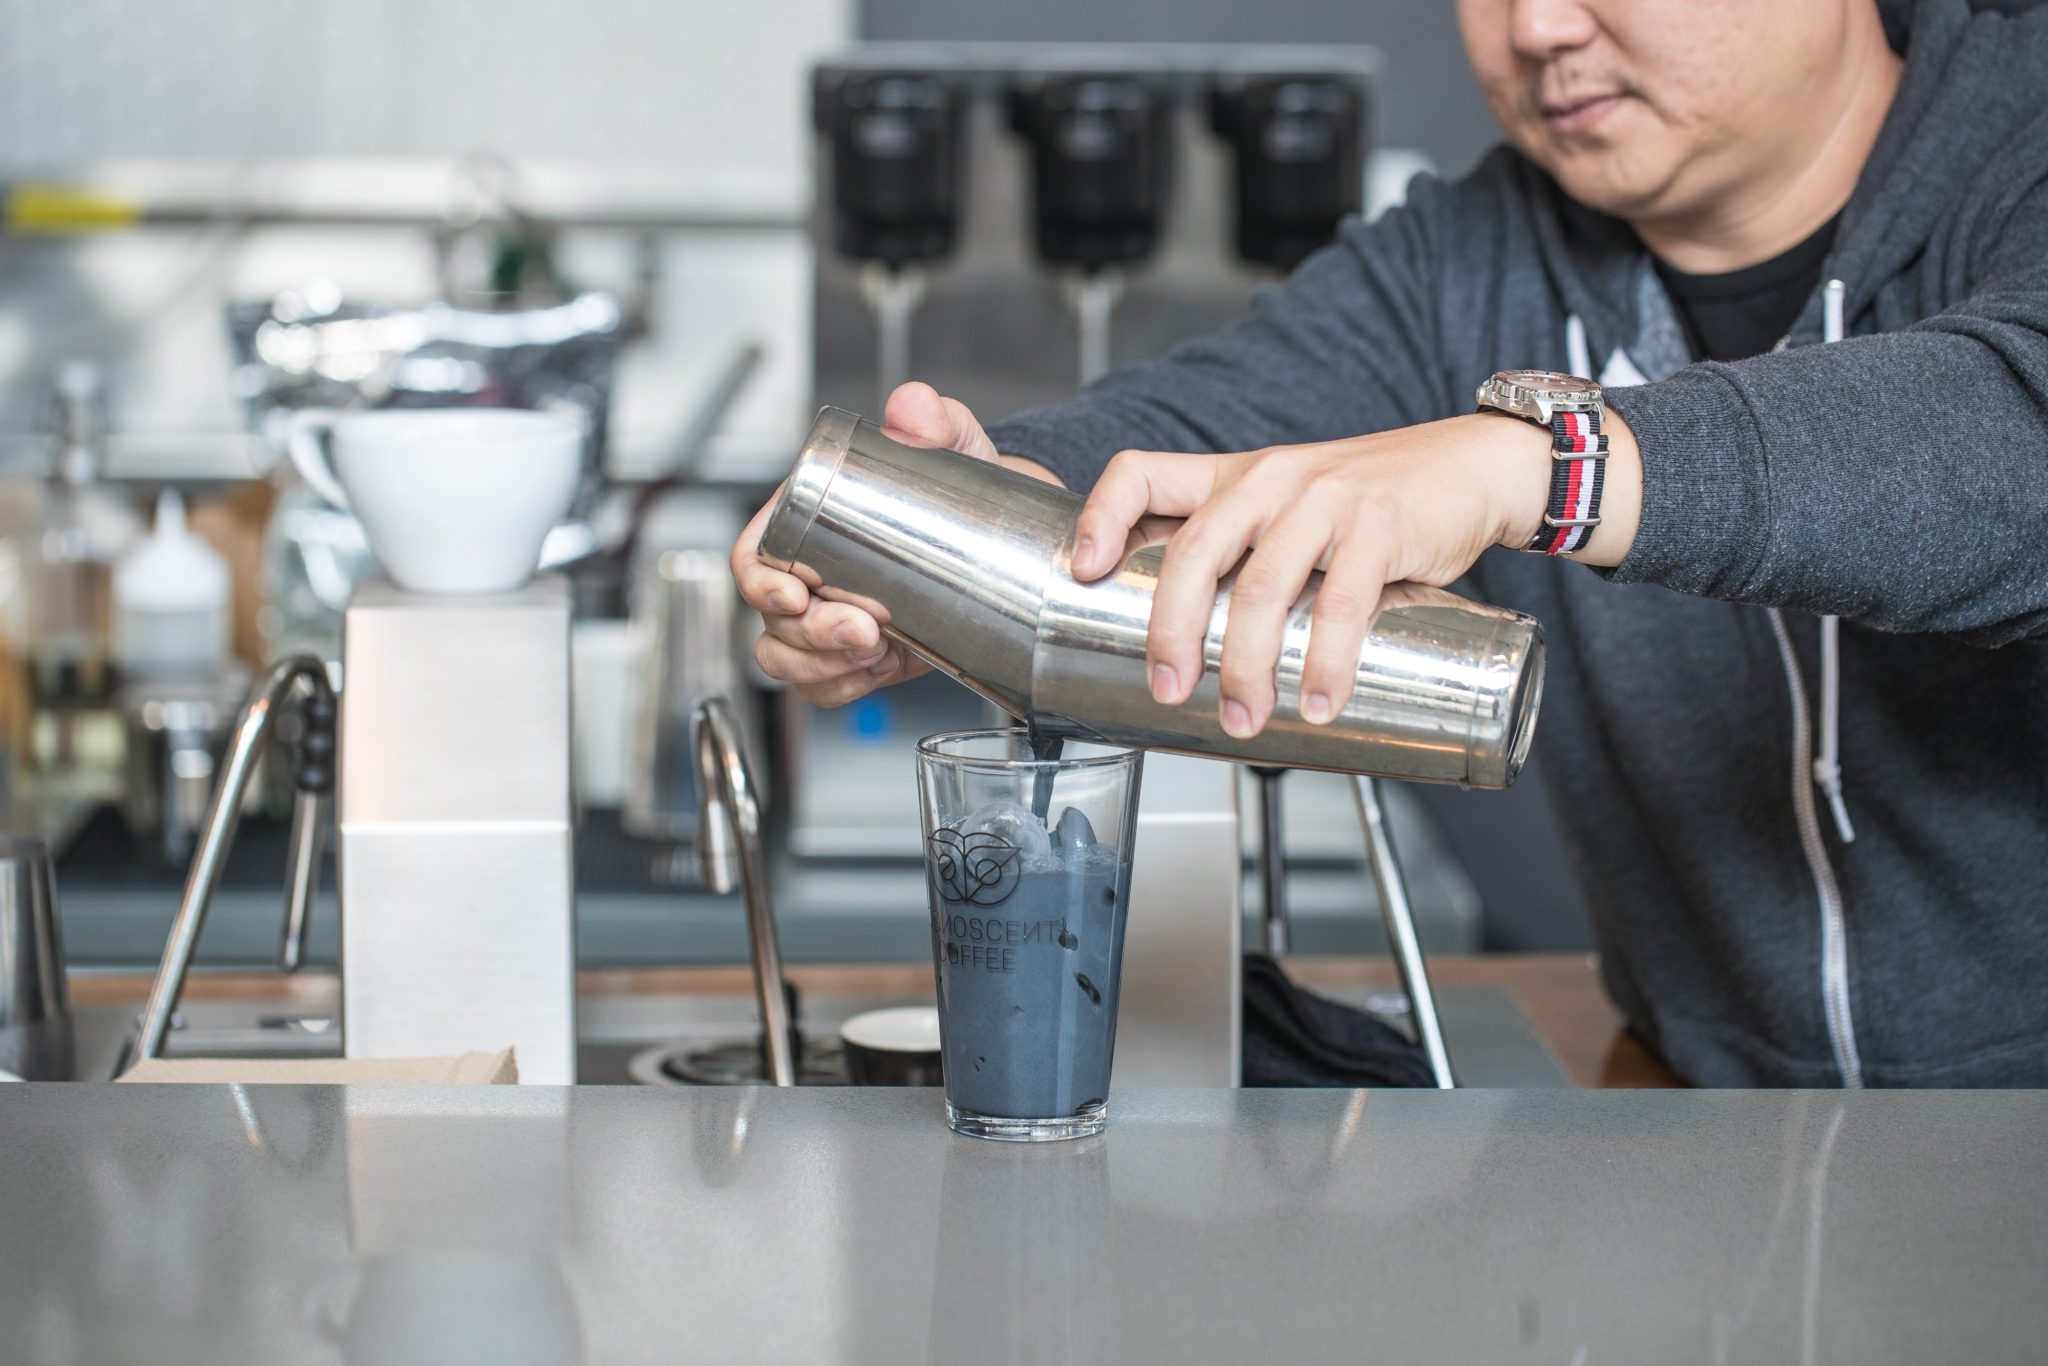 Cognoscenti Coffee owner Yeekai Lim adds one teaspoon of activated charcoal powder to each latte.